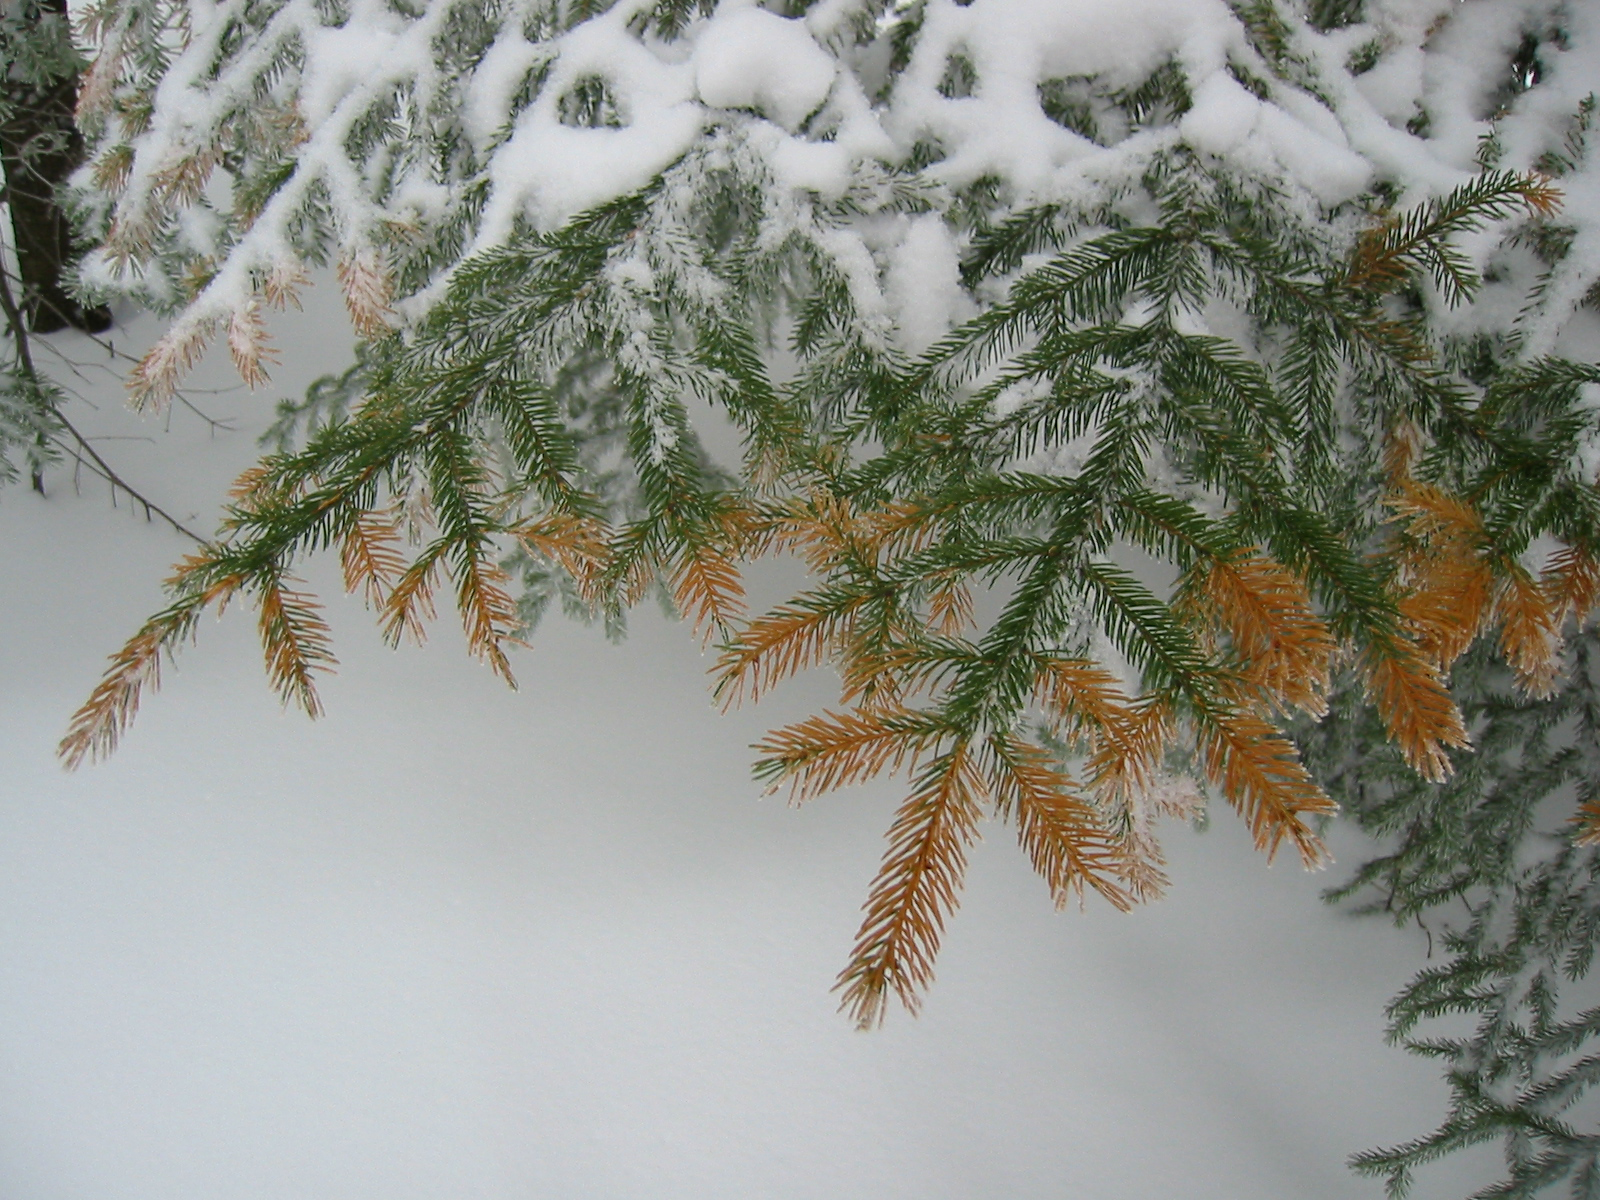 Red spruce needle injury